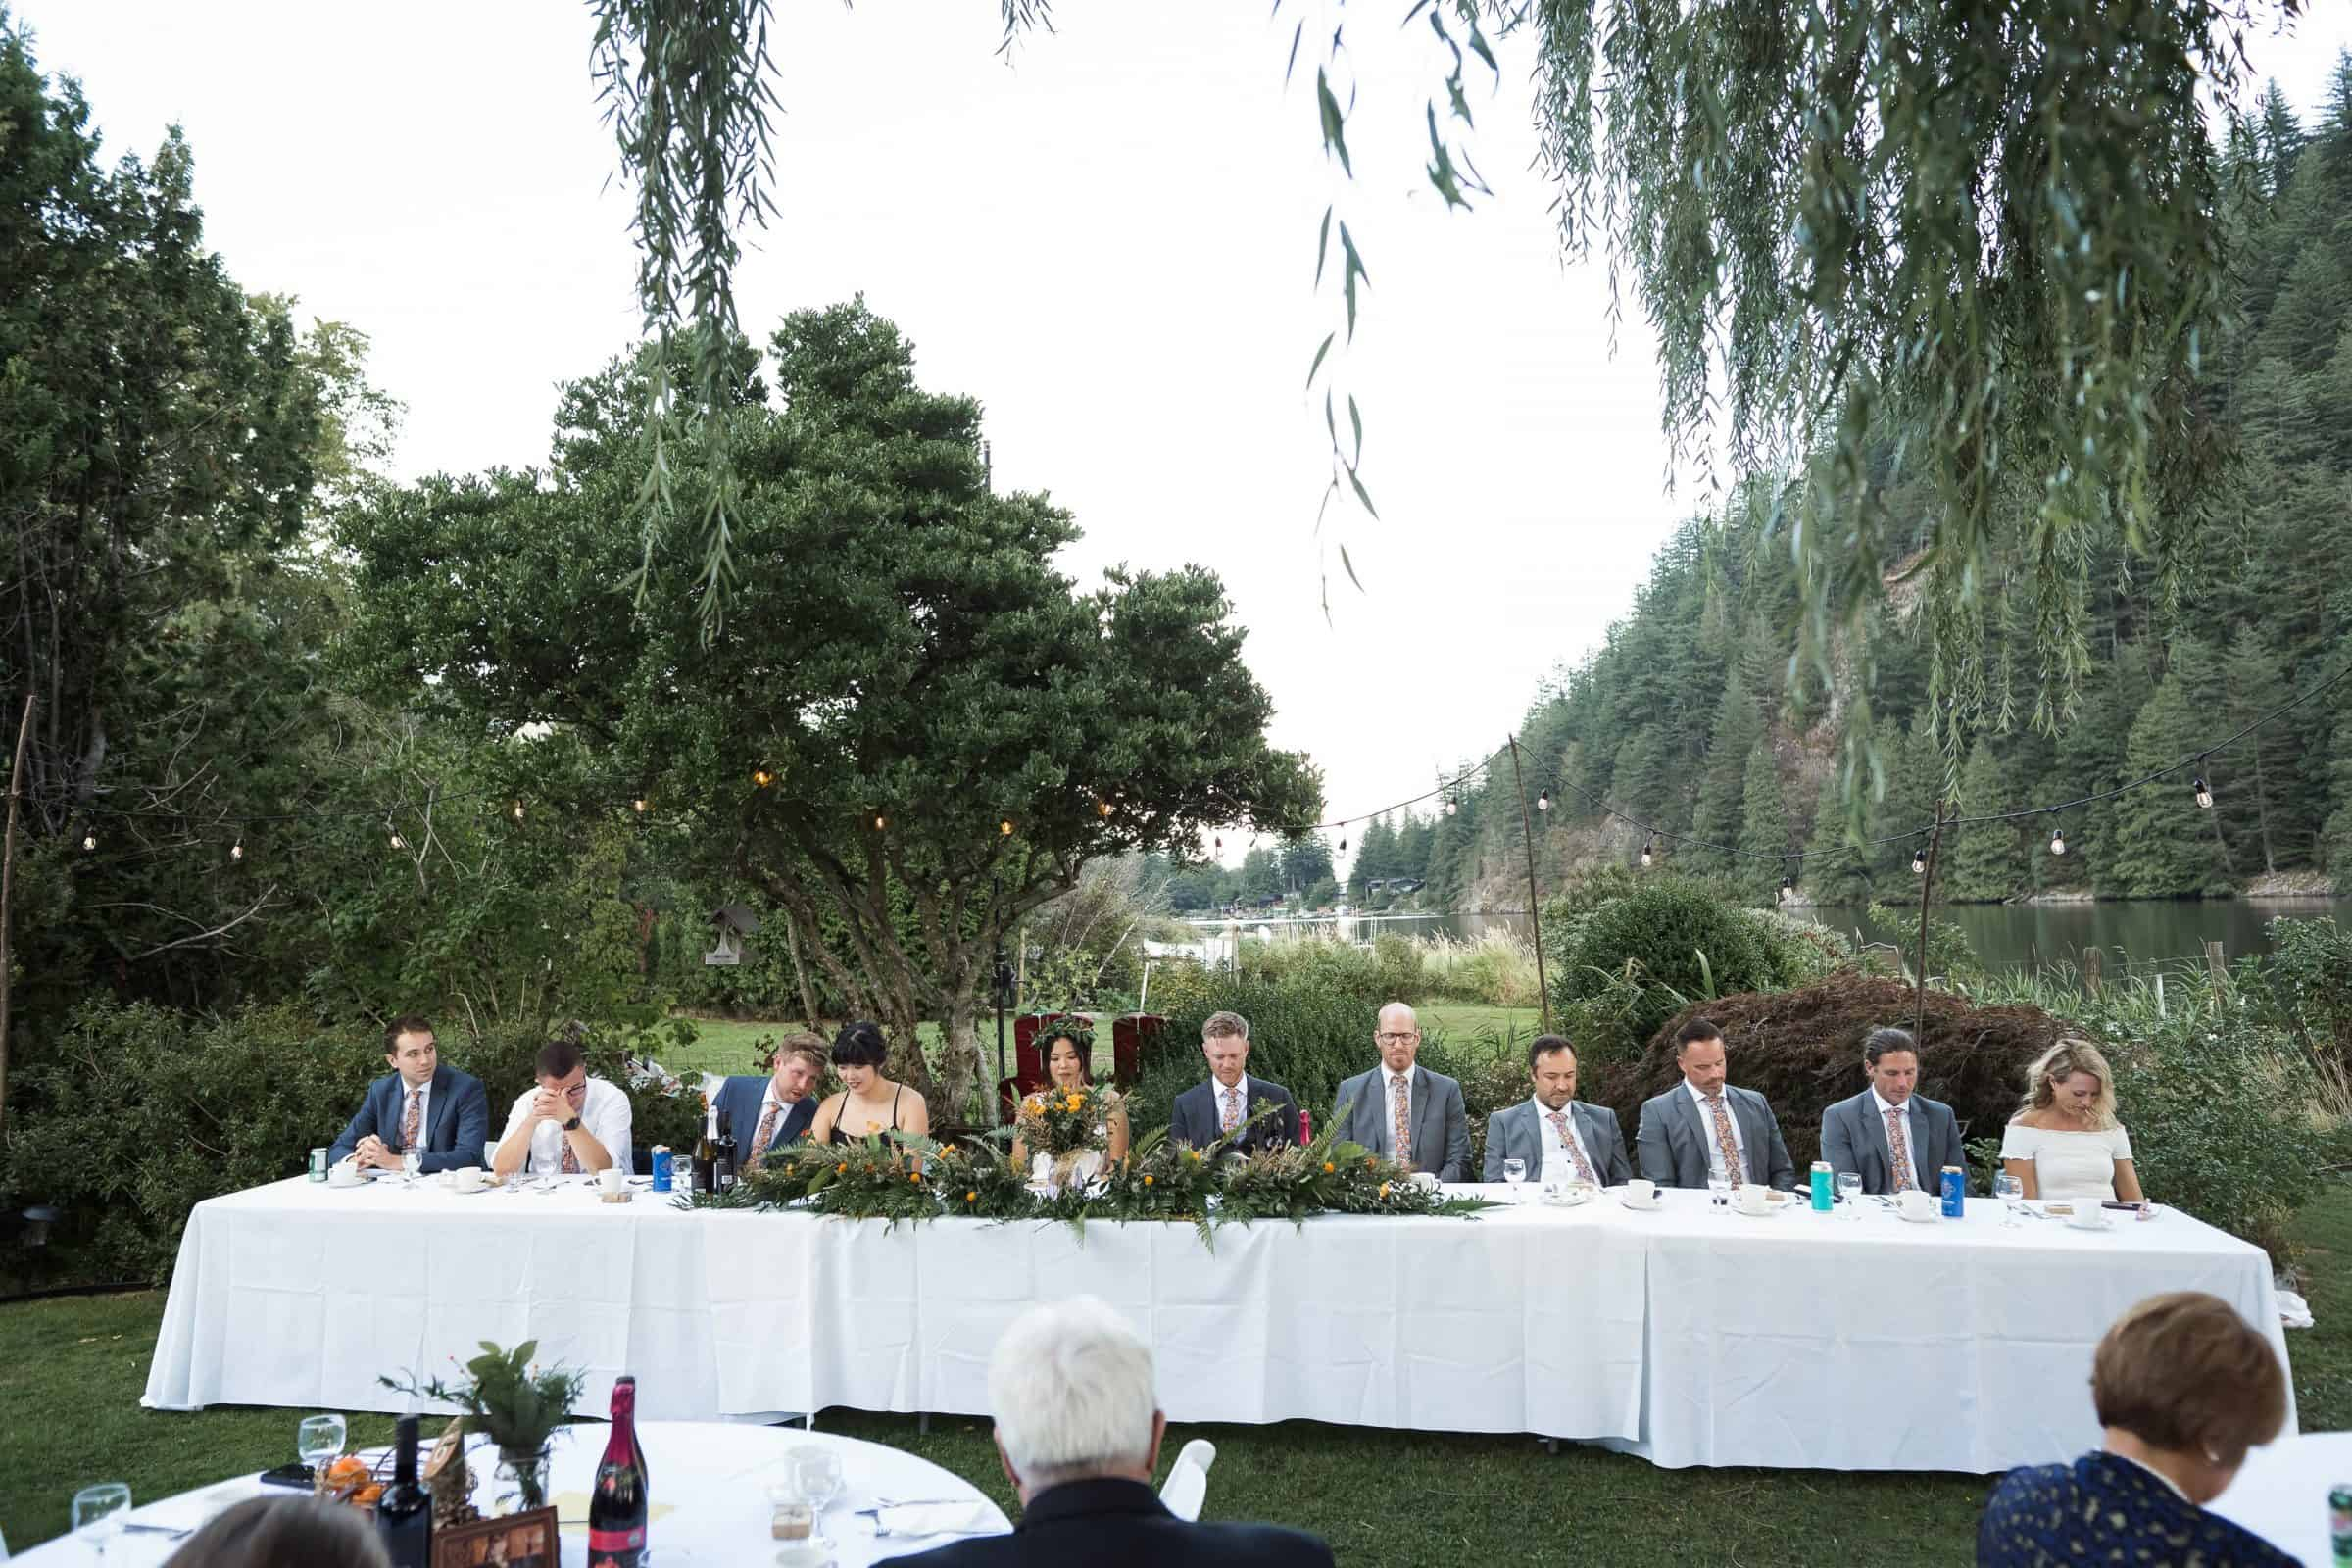 wedding head table in backyard by lake with bridal party sitting at it